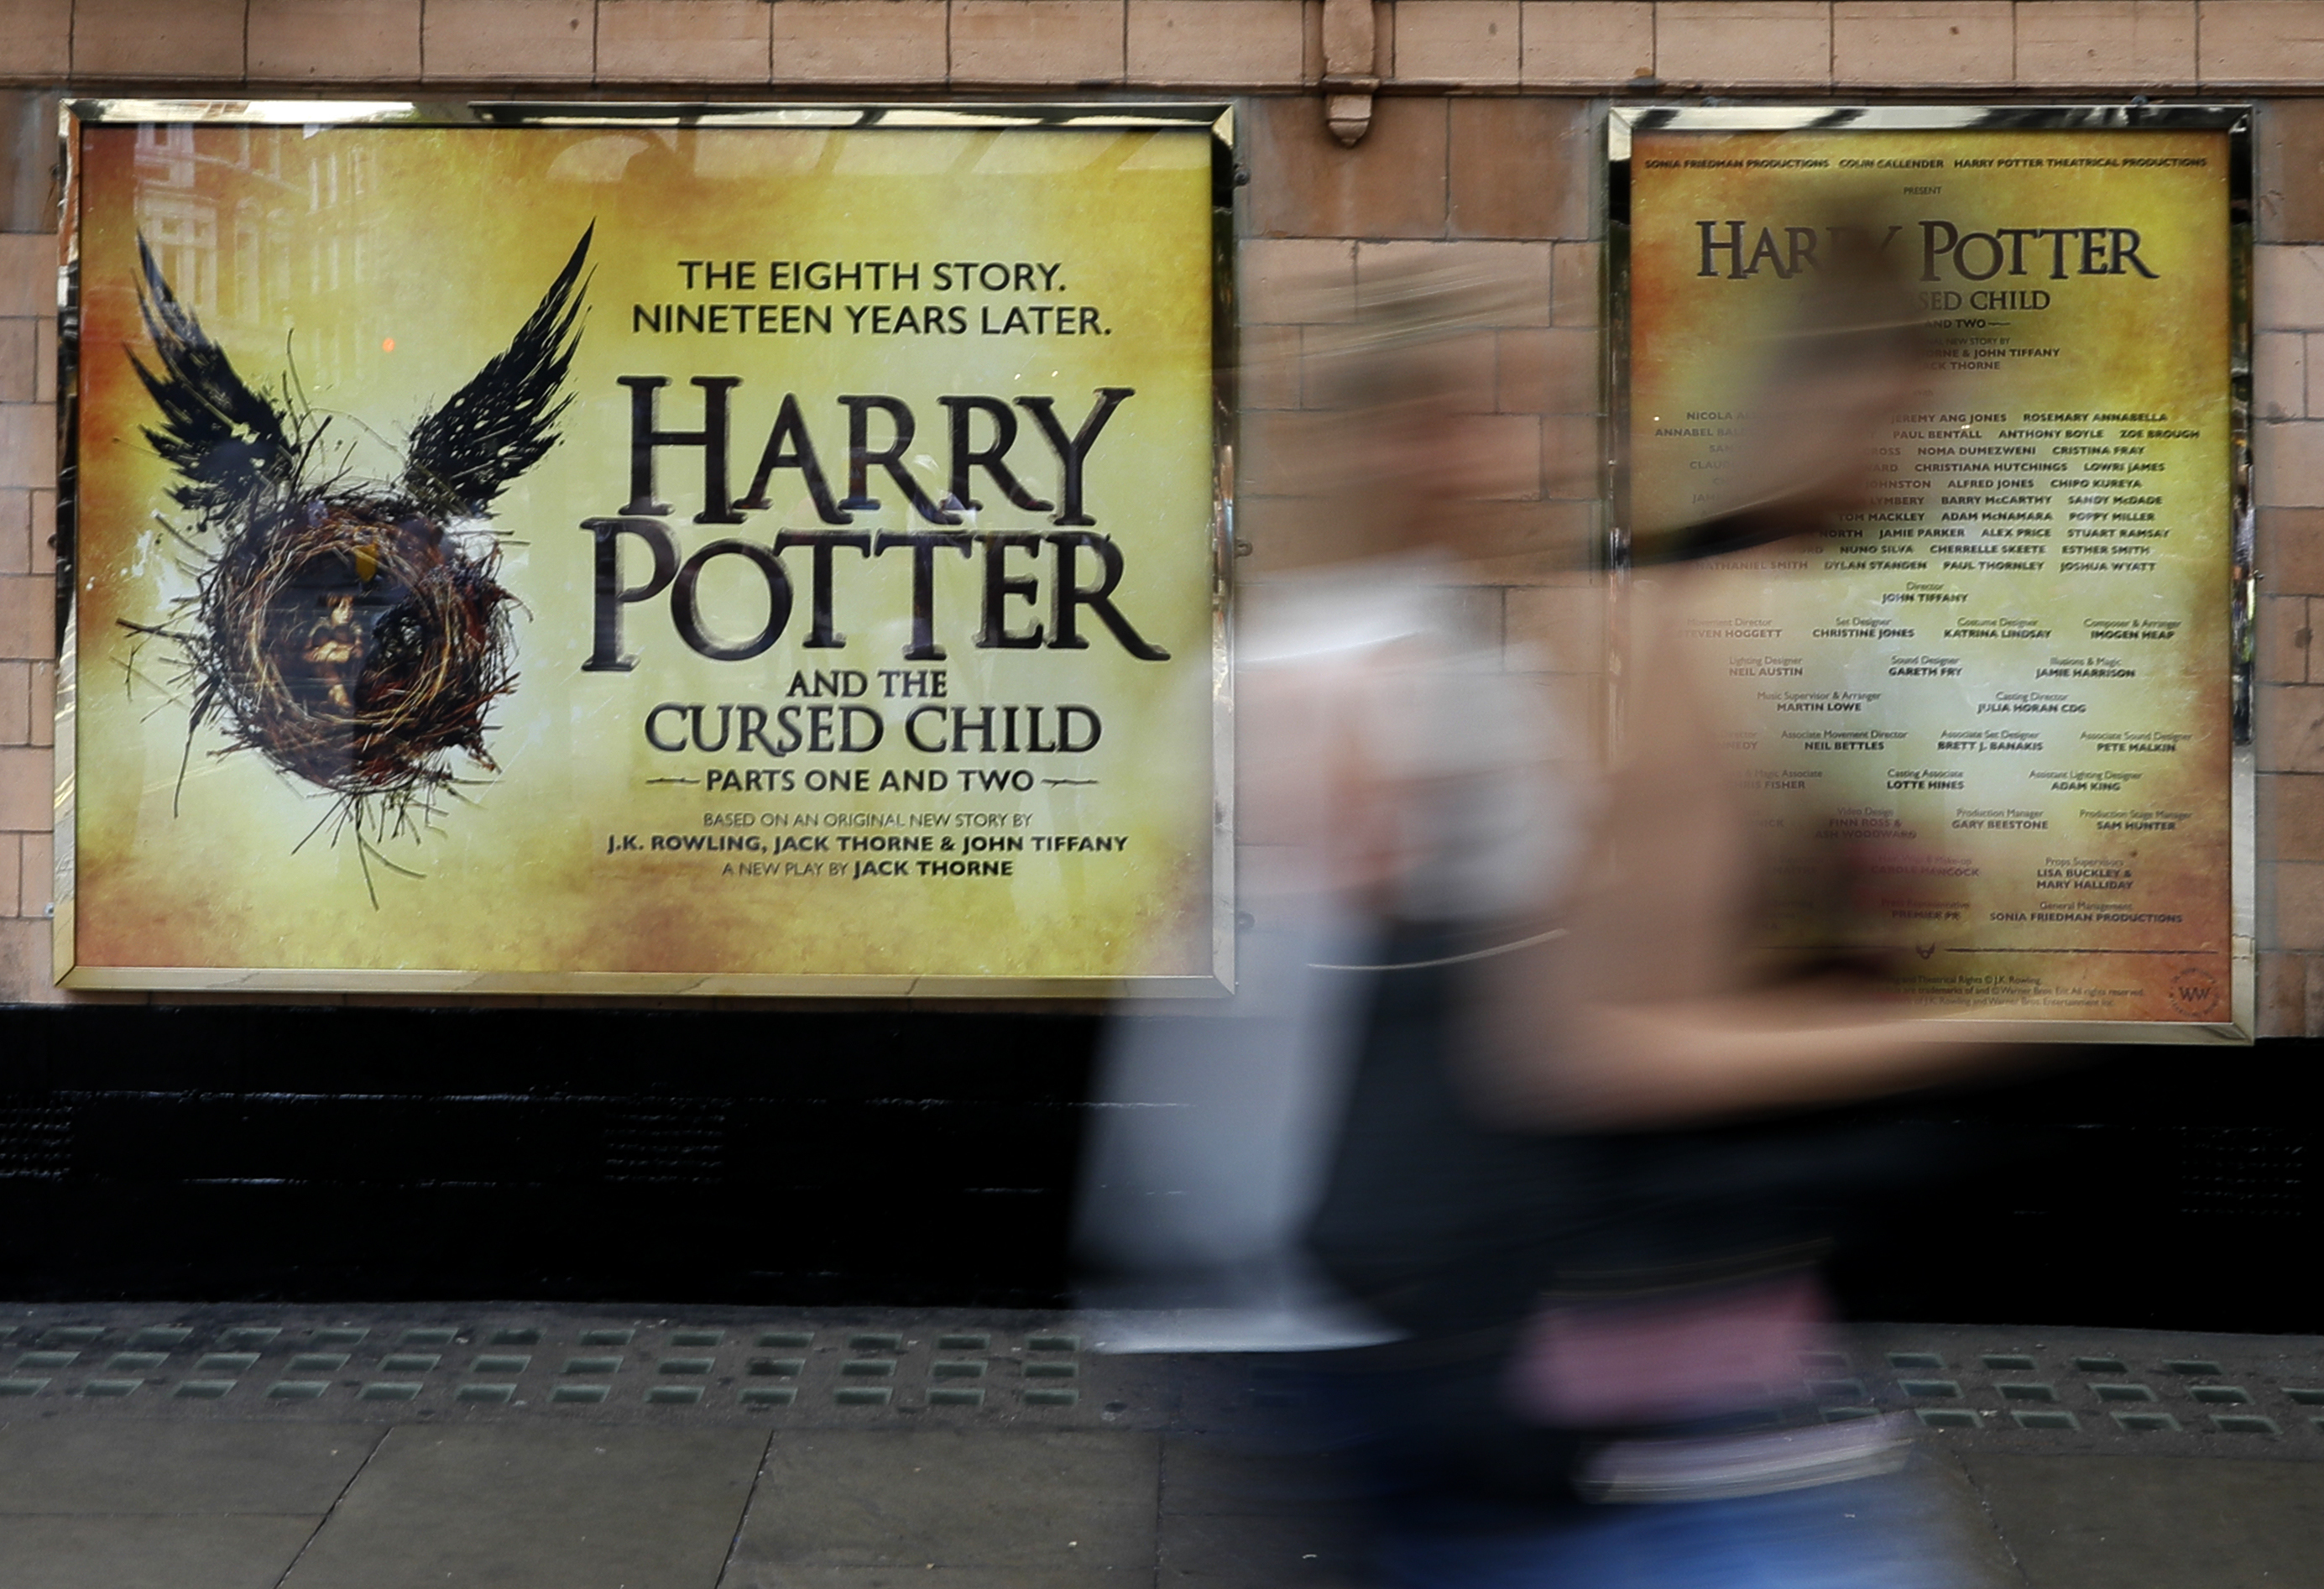 "In this photo taken on Thursday, July 28, 2016, pedestrians pass a poster advertising the new Harry Potter play, at the Palace Theatre in London. Nine years after J.K. Rowling's final novel about the boy wizard, Harry has returned, on the stage and the page - and he's still producing commercial alchemy. ""Harry Potter and the Cursed Child,"" a two-part stage drama that picks up 19 years after the novels ended, has its gala opening Saturday at London's Palace Theatre, and is all-but sold out through December 2017. (AP Photo/Kirsty Wigglesworth)"